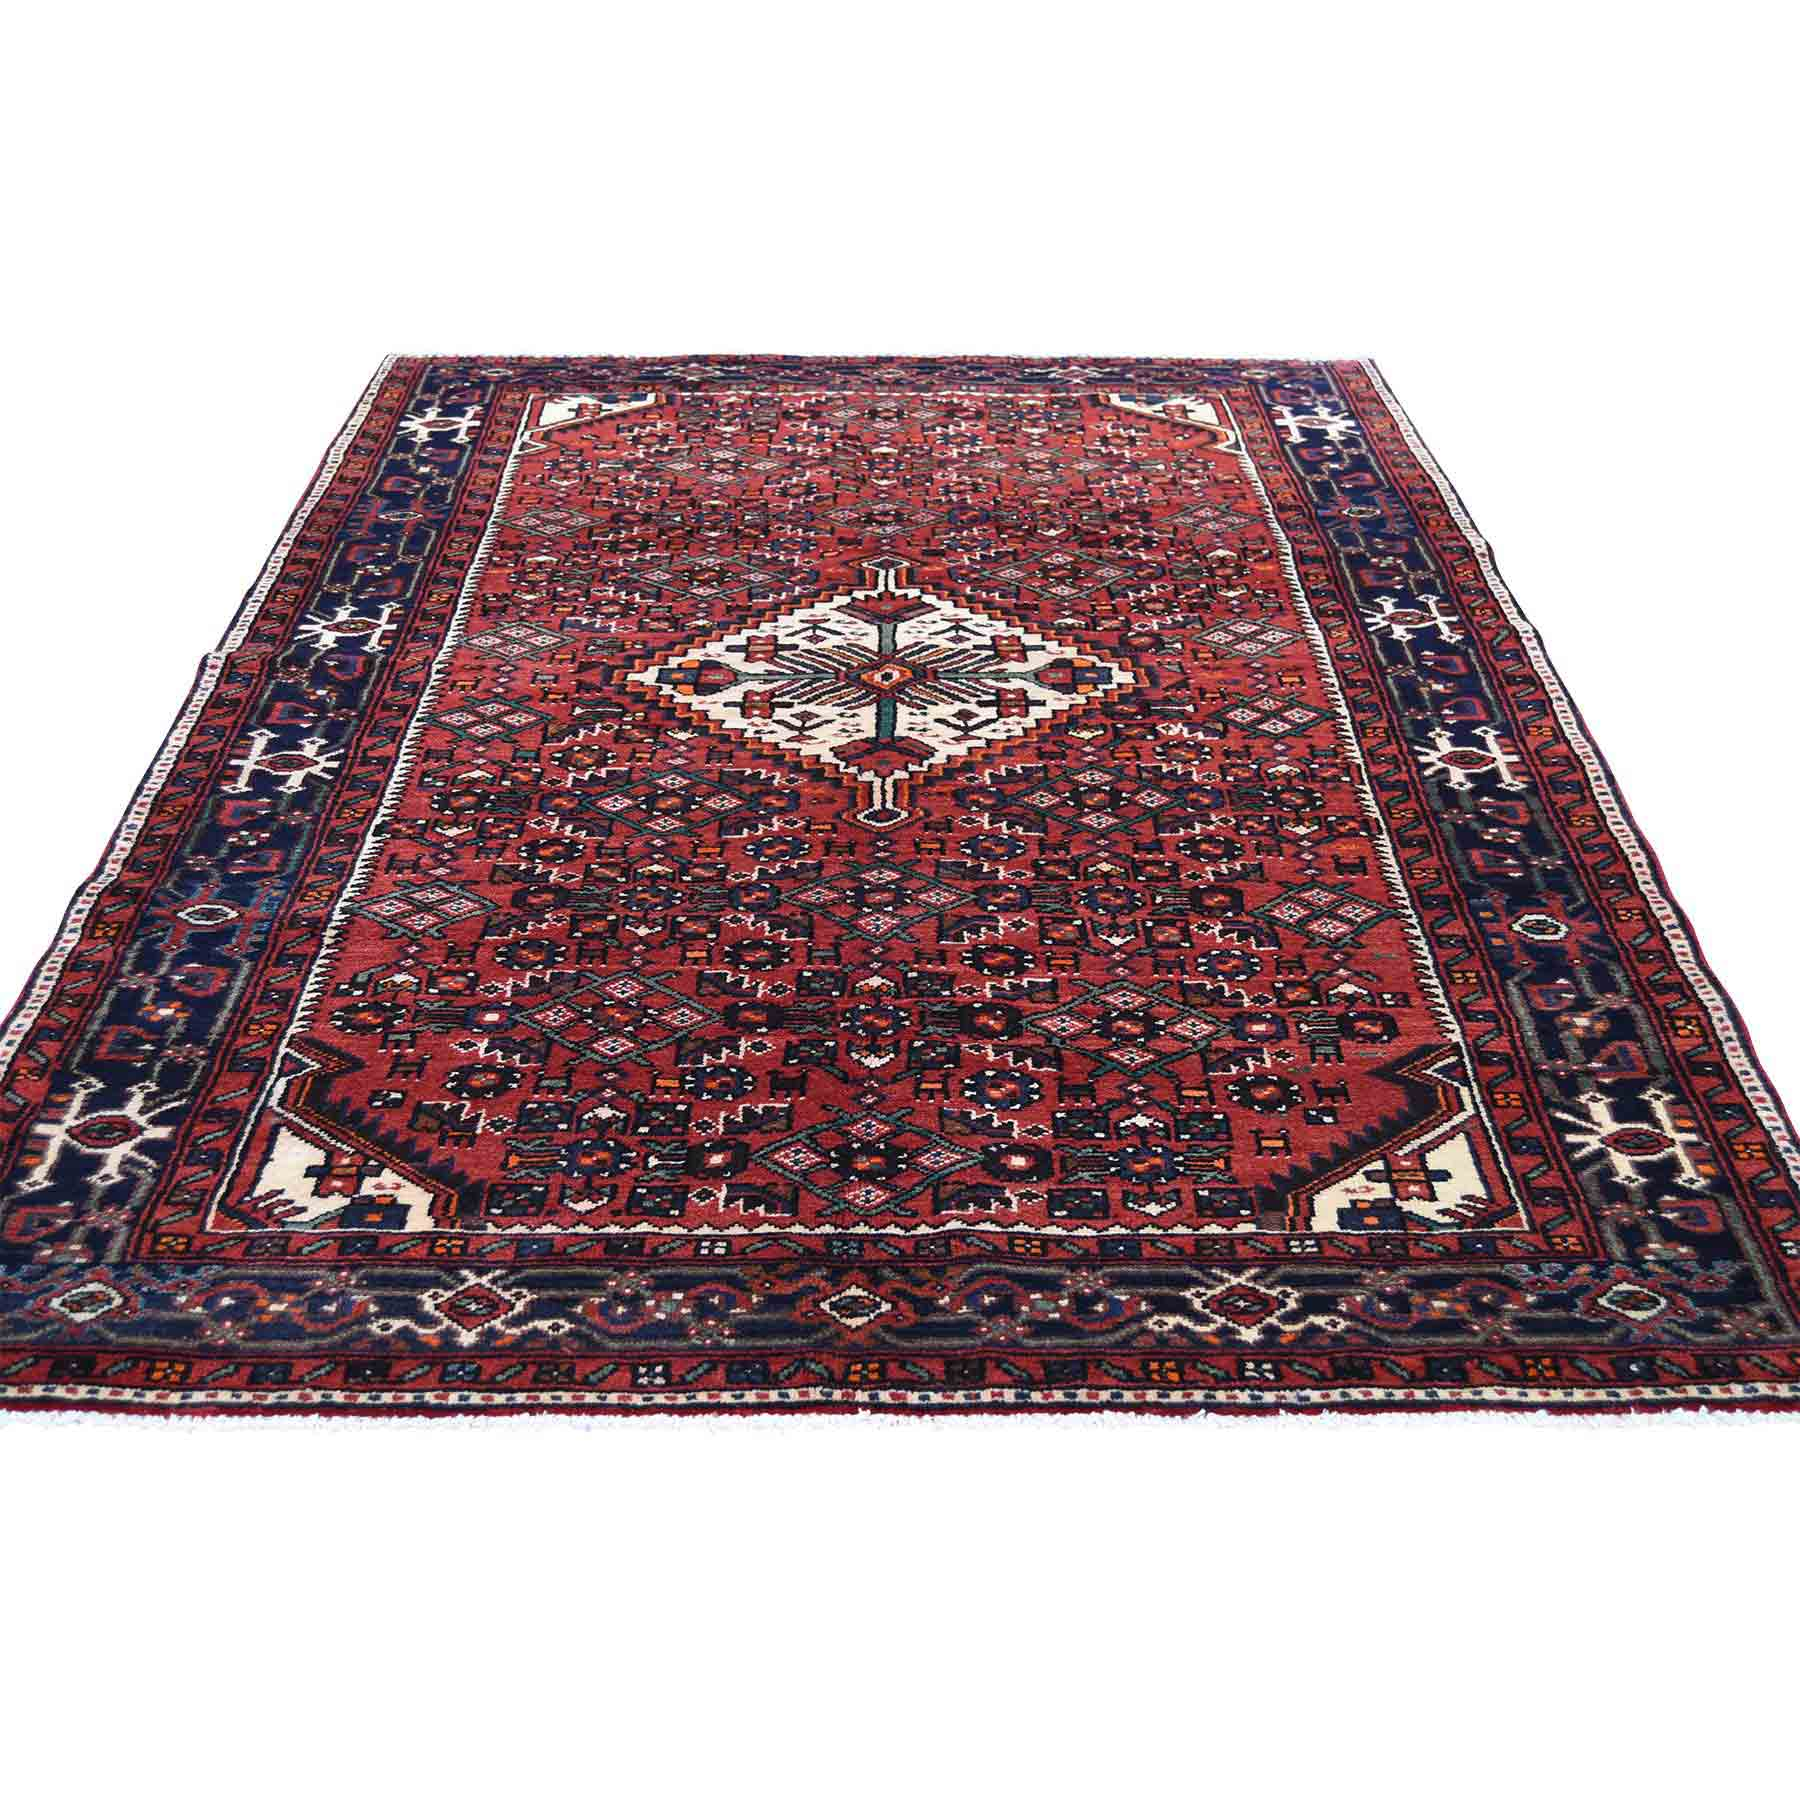 Oriental Rugs Red Bank Nj: Red New Persian Hussainabad Pure Wool Hand-Knotted